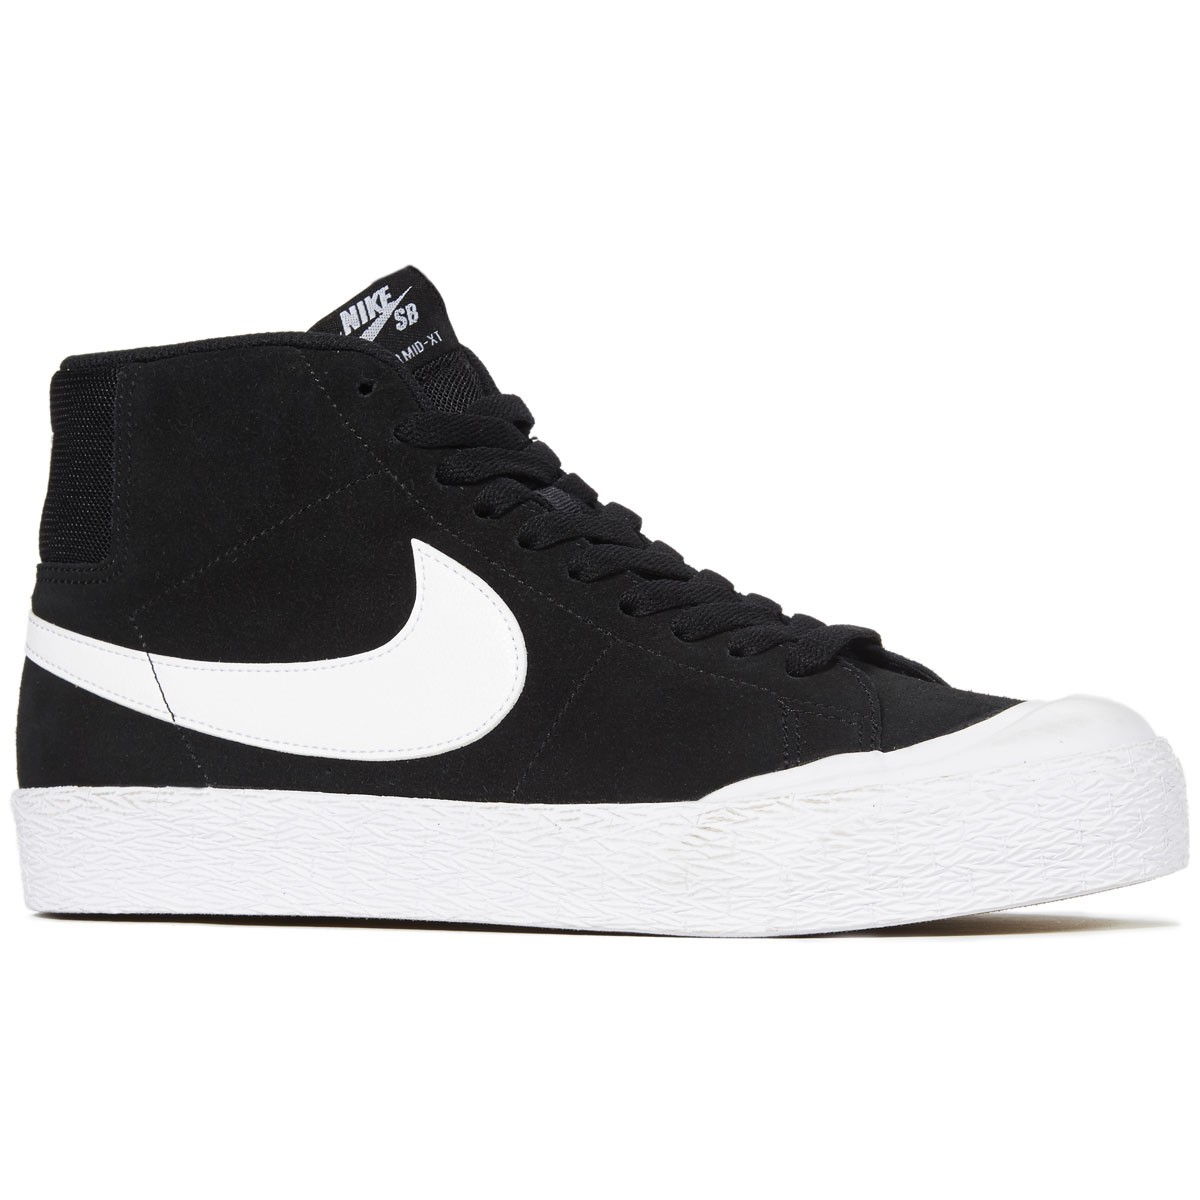 nike sb zoom blazer mid xt shoes. Black Bedroom Furniture Sets. Home Design Ideas